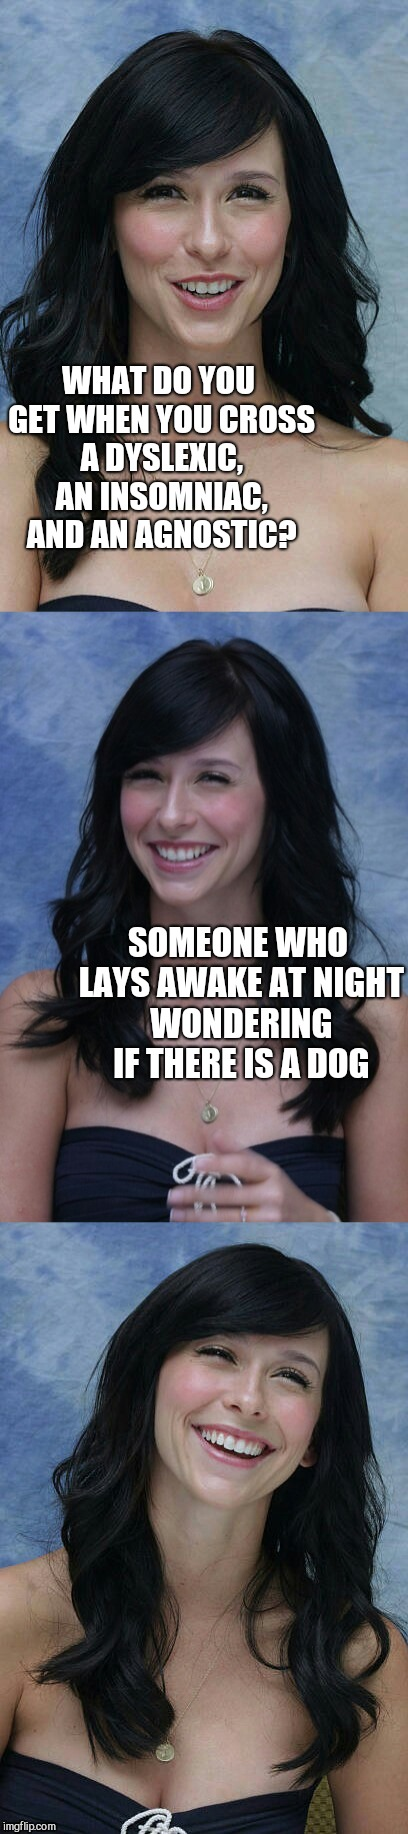 Jennifer Love Hewitt bad puns template | WHAT DO YOU GET WHEN YOU CROSS A DYSLEXIC, AN INSOMNIAC, AND AN AGNOSTIC? SOMEONE WHO LAYS AWAKE AT NIGHT WONDERING IF THERE IS A DOG | image tagged in jennifer love hewitt bad puns template,jennifer love hewitt,jbmemegeek,bad puns,bad jokes,dyslexia | made w/ Imgflip meme maker